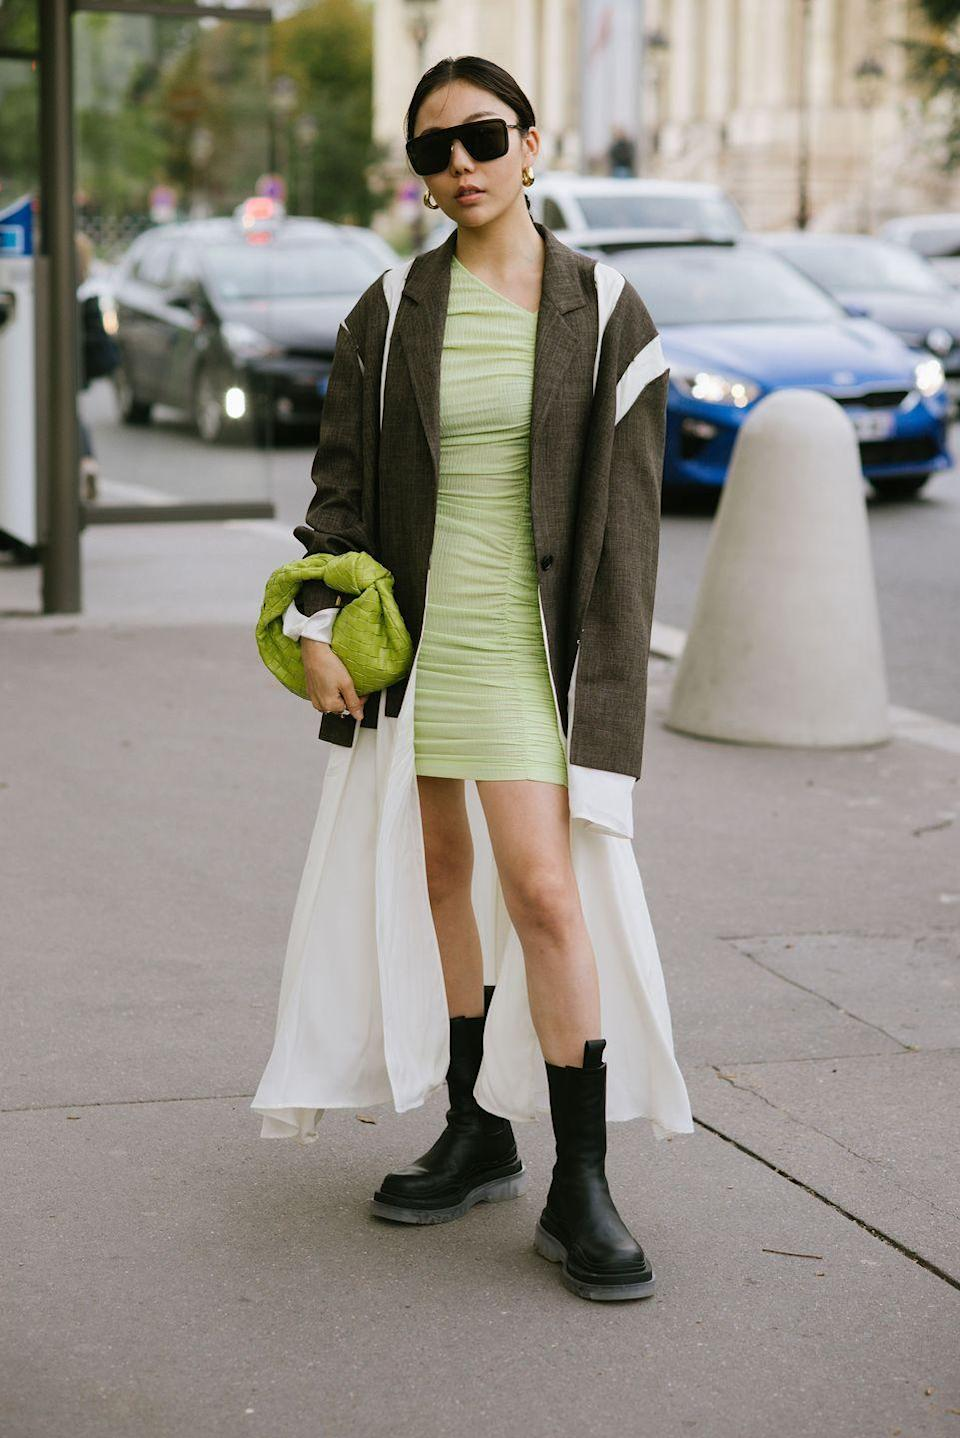 """<p>If you're itching to dust off your <a href=""""https://www.cosmopolitan.com/uk/fashion/style/g10000448/best-summer-dresses/"""" rel=""""nofollow noopener"""" target=""""_blank"""" data-ylk=""""slk:summer dresses"""" class=""""link rapid-noclick-resp"""">summer dresses</a> before we make it to the sunny season, pair them with your favourite chunky <a href=""""https://www.cosmopolitan.com/uk/fashion/style/g34191028/best-womens-boots/"""" rel=""""nofollow noopener"""" target=""""_blank"""" data-ylk=""""slk:leather boots"""" class=""""link rapid-noclick-resp"""">leather boots</a>, in the meantime. The stomper that hits at mid-calf goes well with both maxi and mini dresses alike.</p>"""